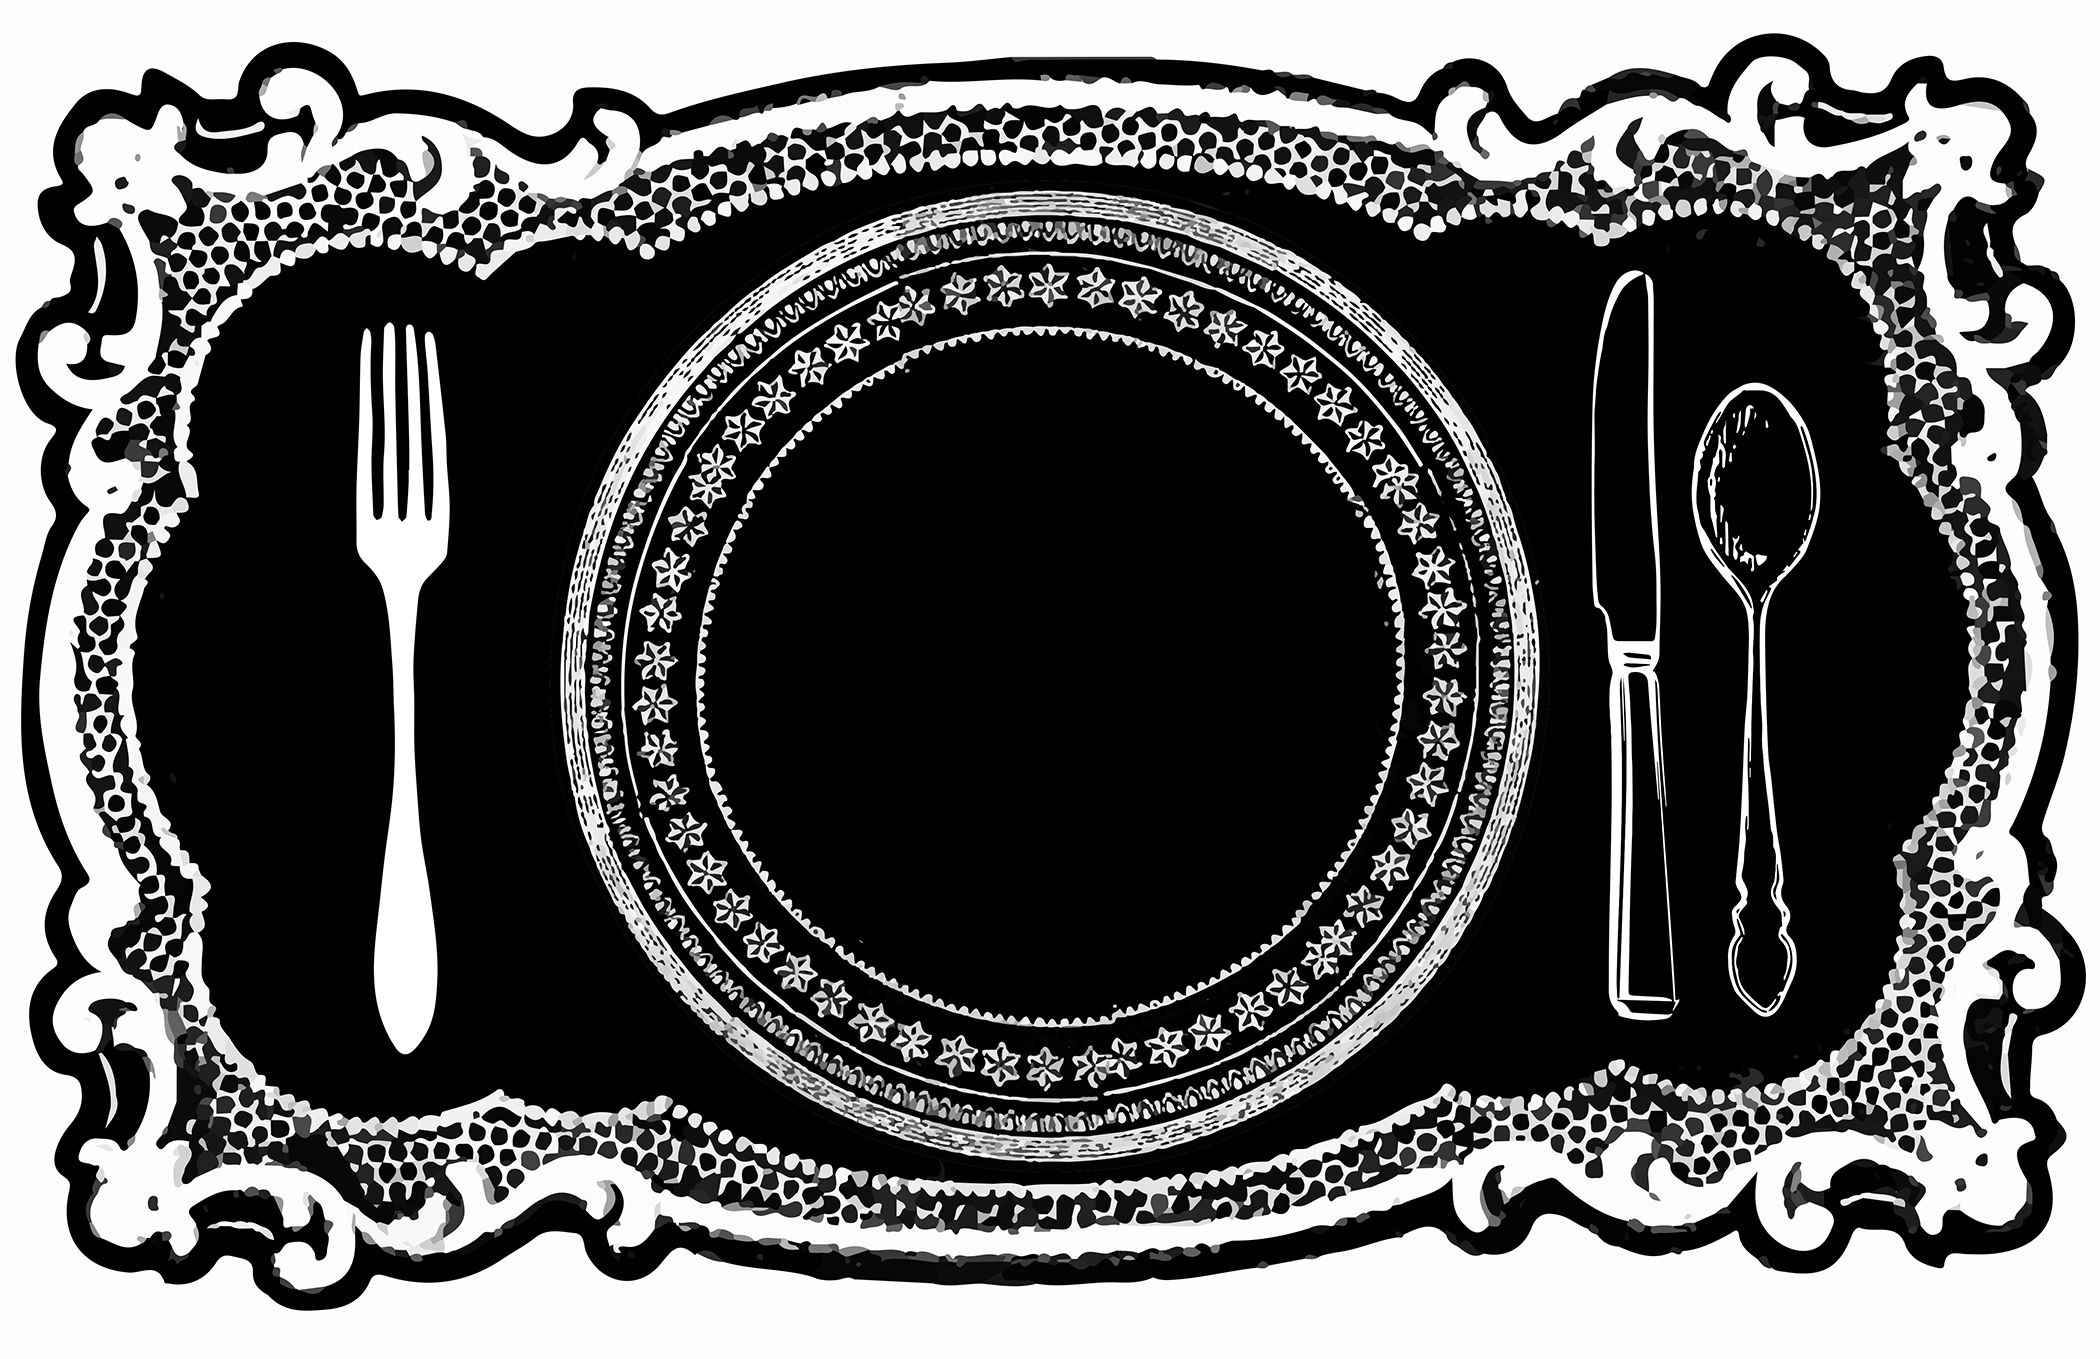 placemat_small